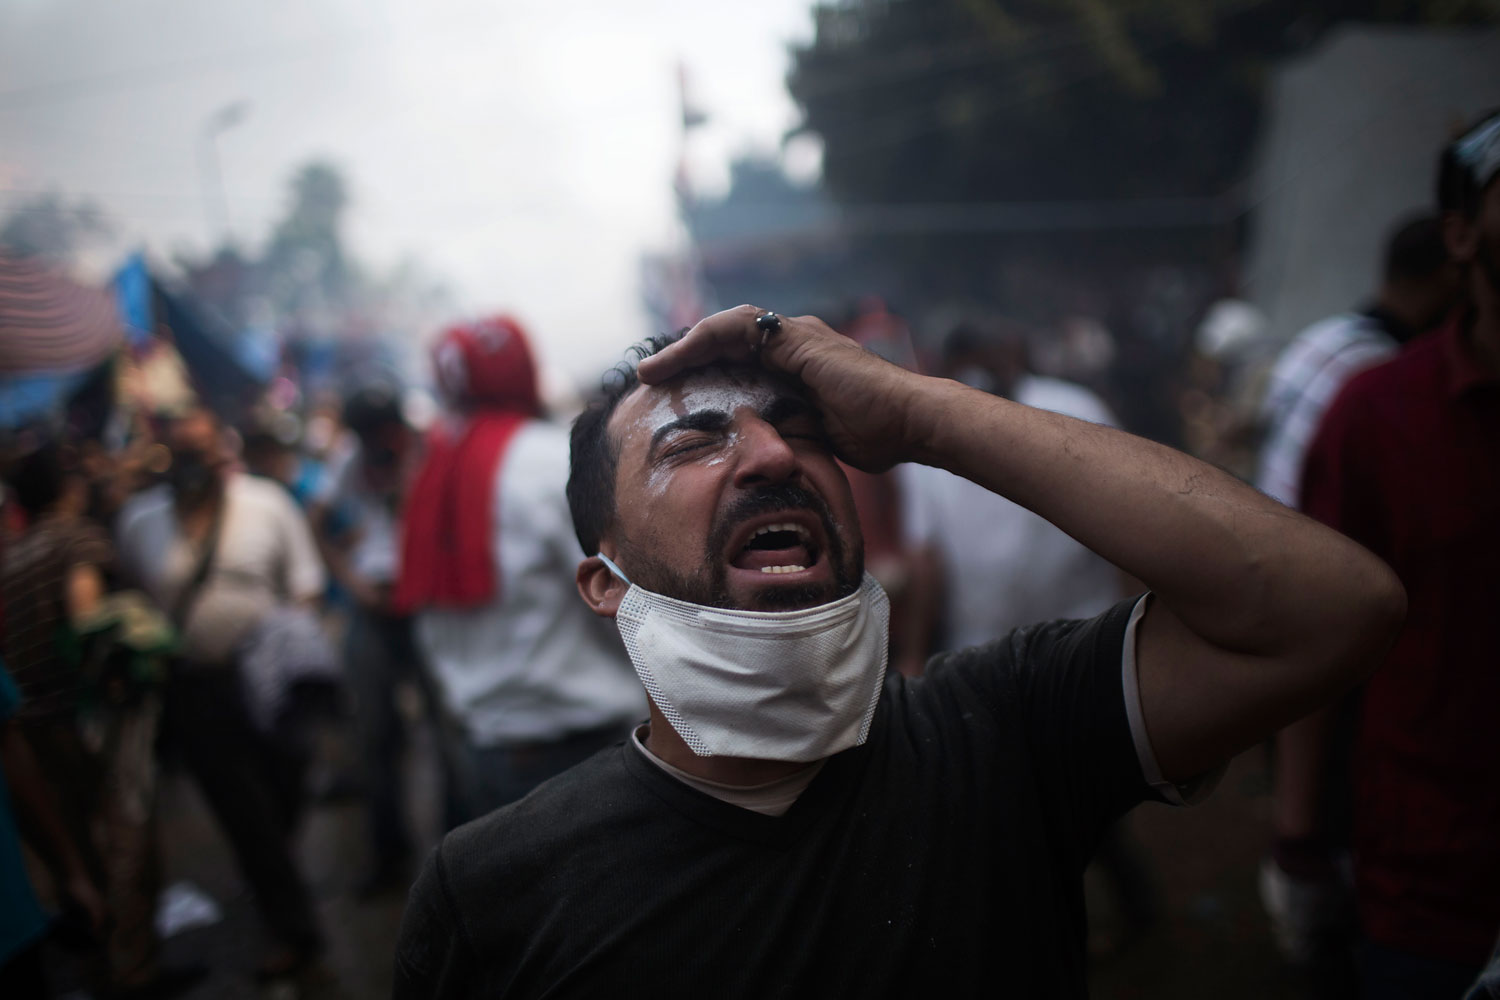 A supporter of ousted Egyptian President Mohammed Morsi reacts during clashes with Egyptian security forces in Rabaah Al-Adawiya in Cairo's Nasr City district, Aug. 14, 2013.